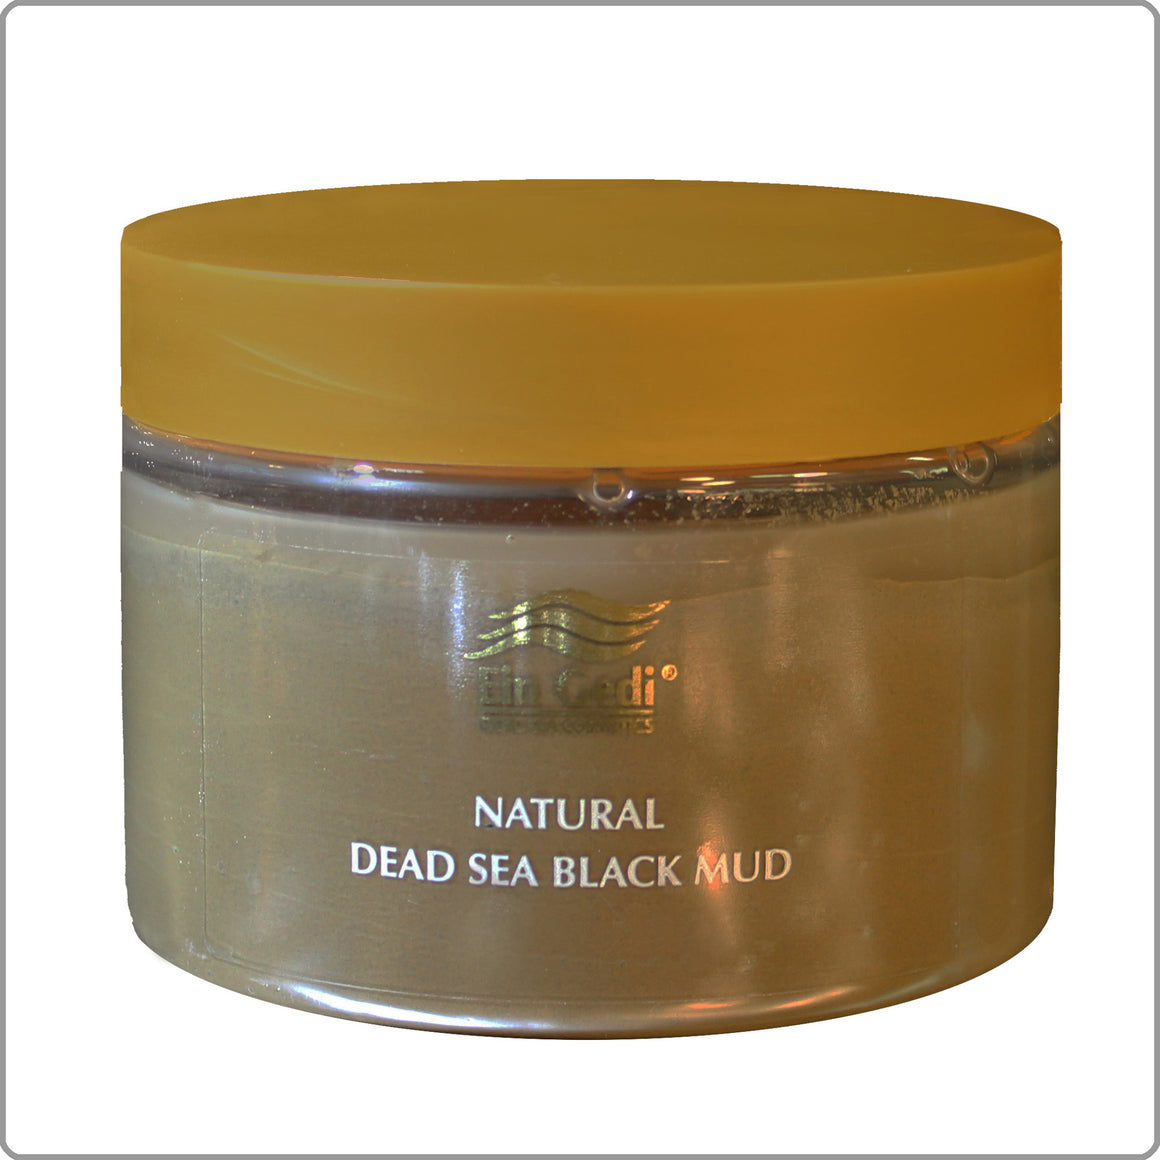 Natural Dead Sea Black Mud